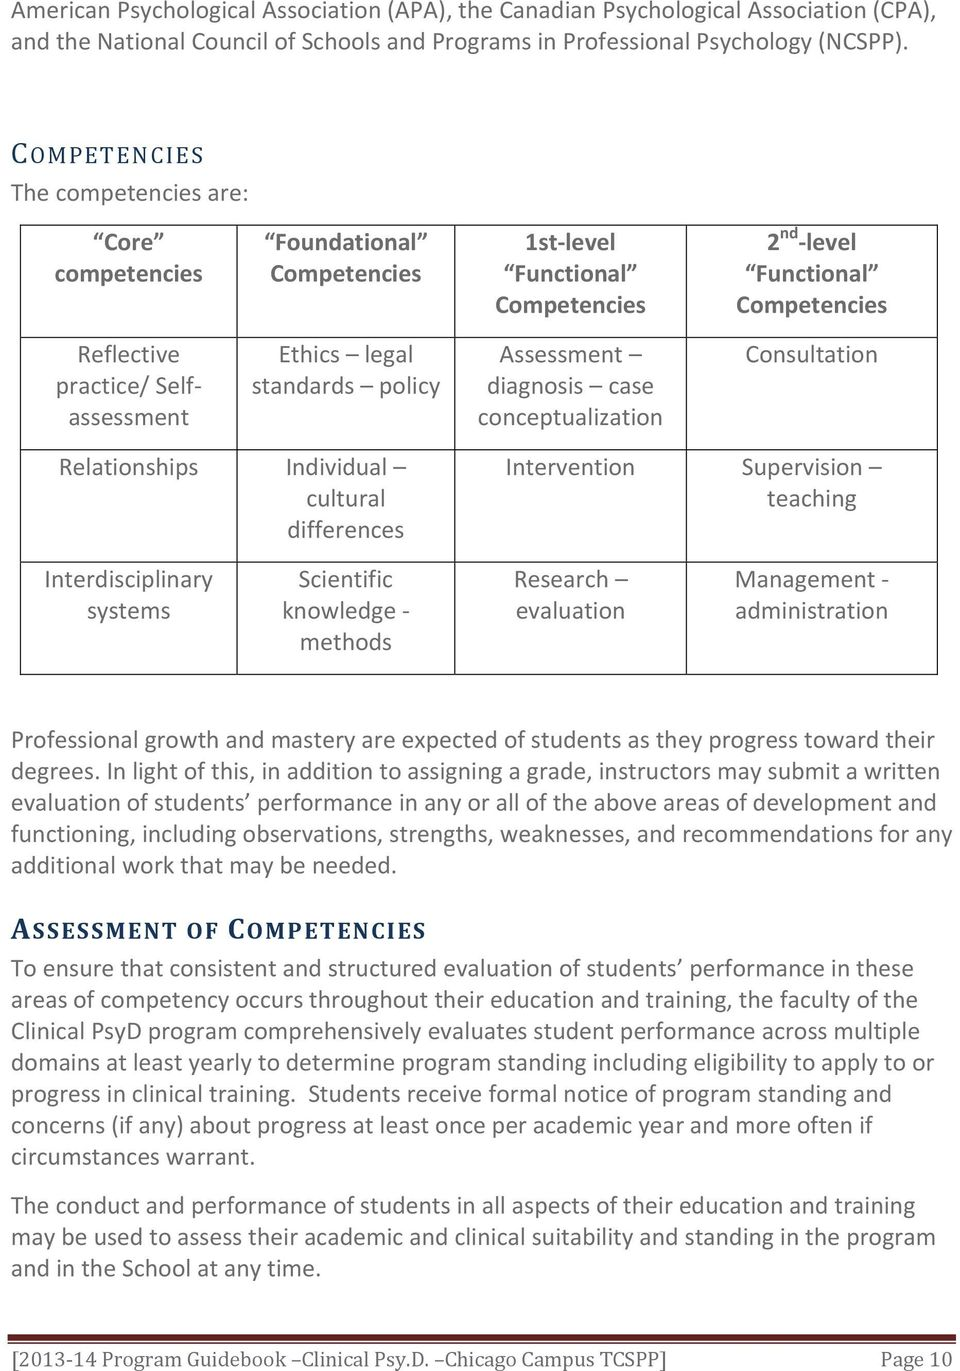 standards policy Assessment diagnosis case conceptualization Consultation Relationships Individual cultural differences Intervention Supervision teaching Interdisciplinary systems Scientific